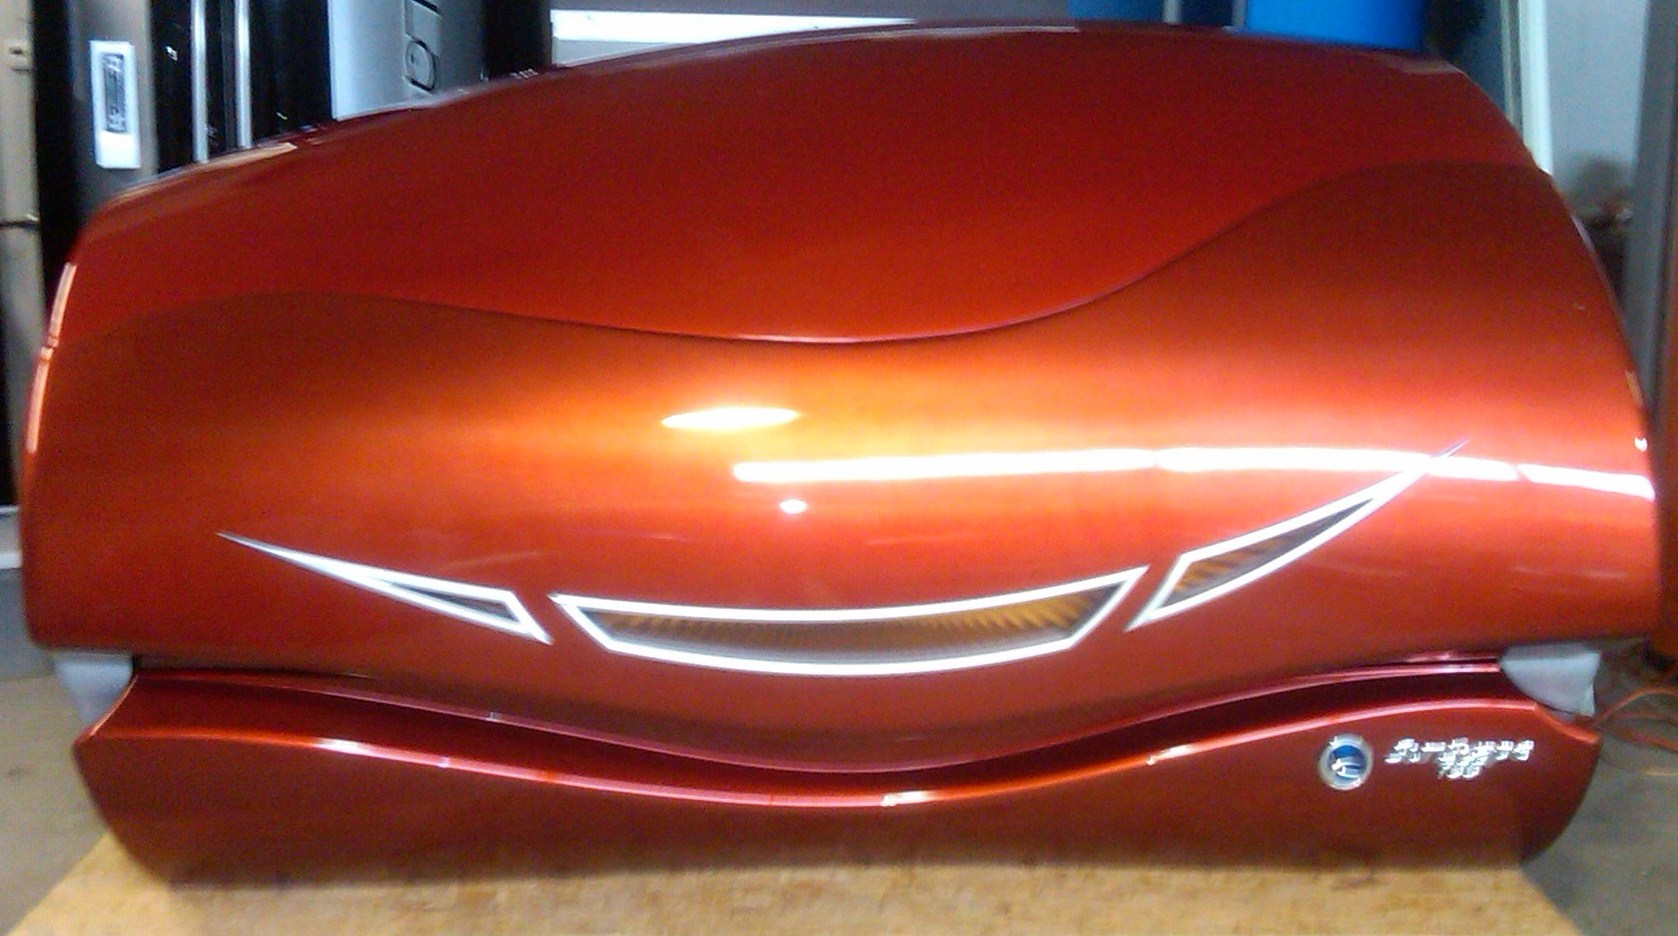 photo of a used ETS Sunscape 755 orange color closed lid